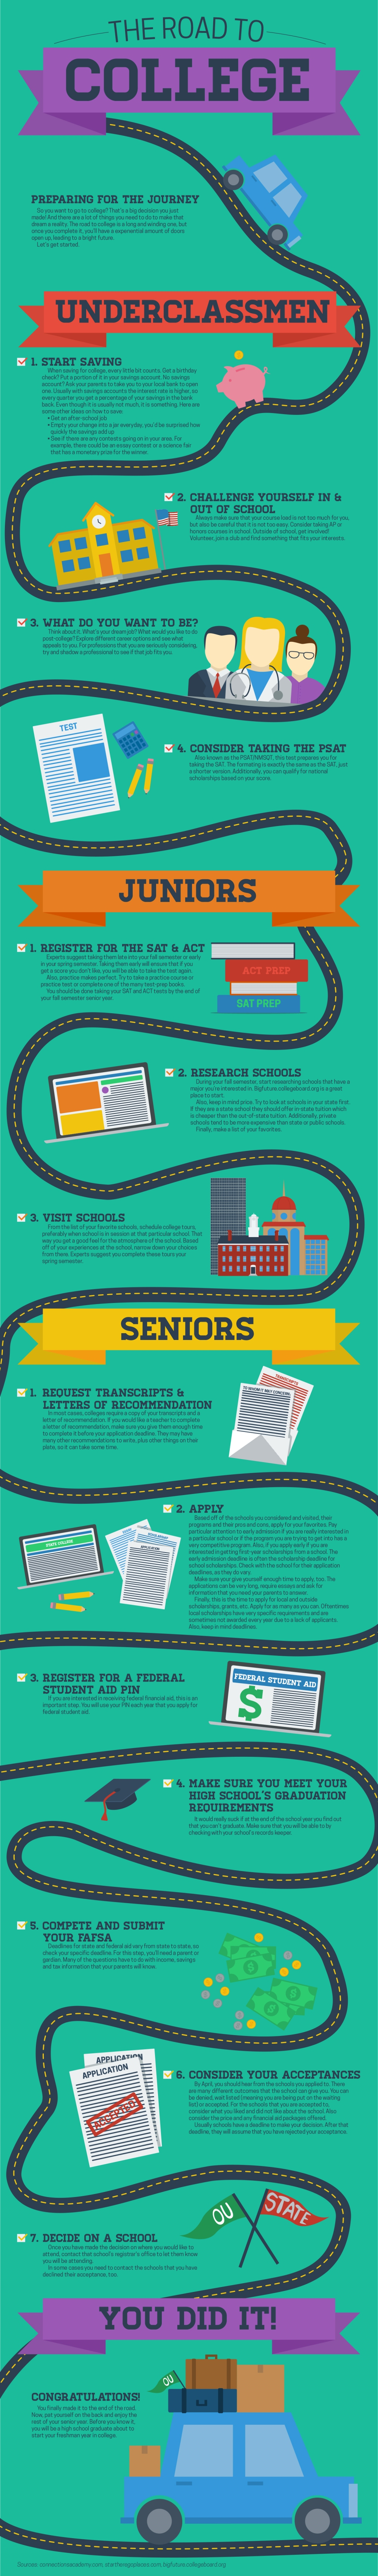 """The Road to College"" Infographic"